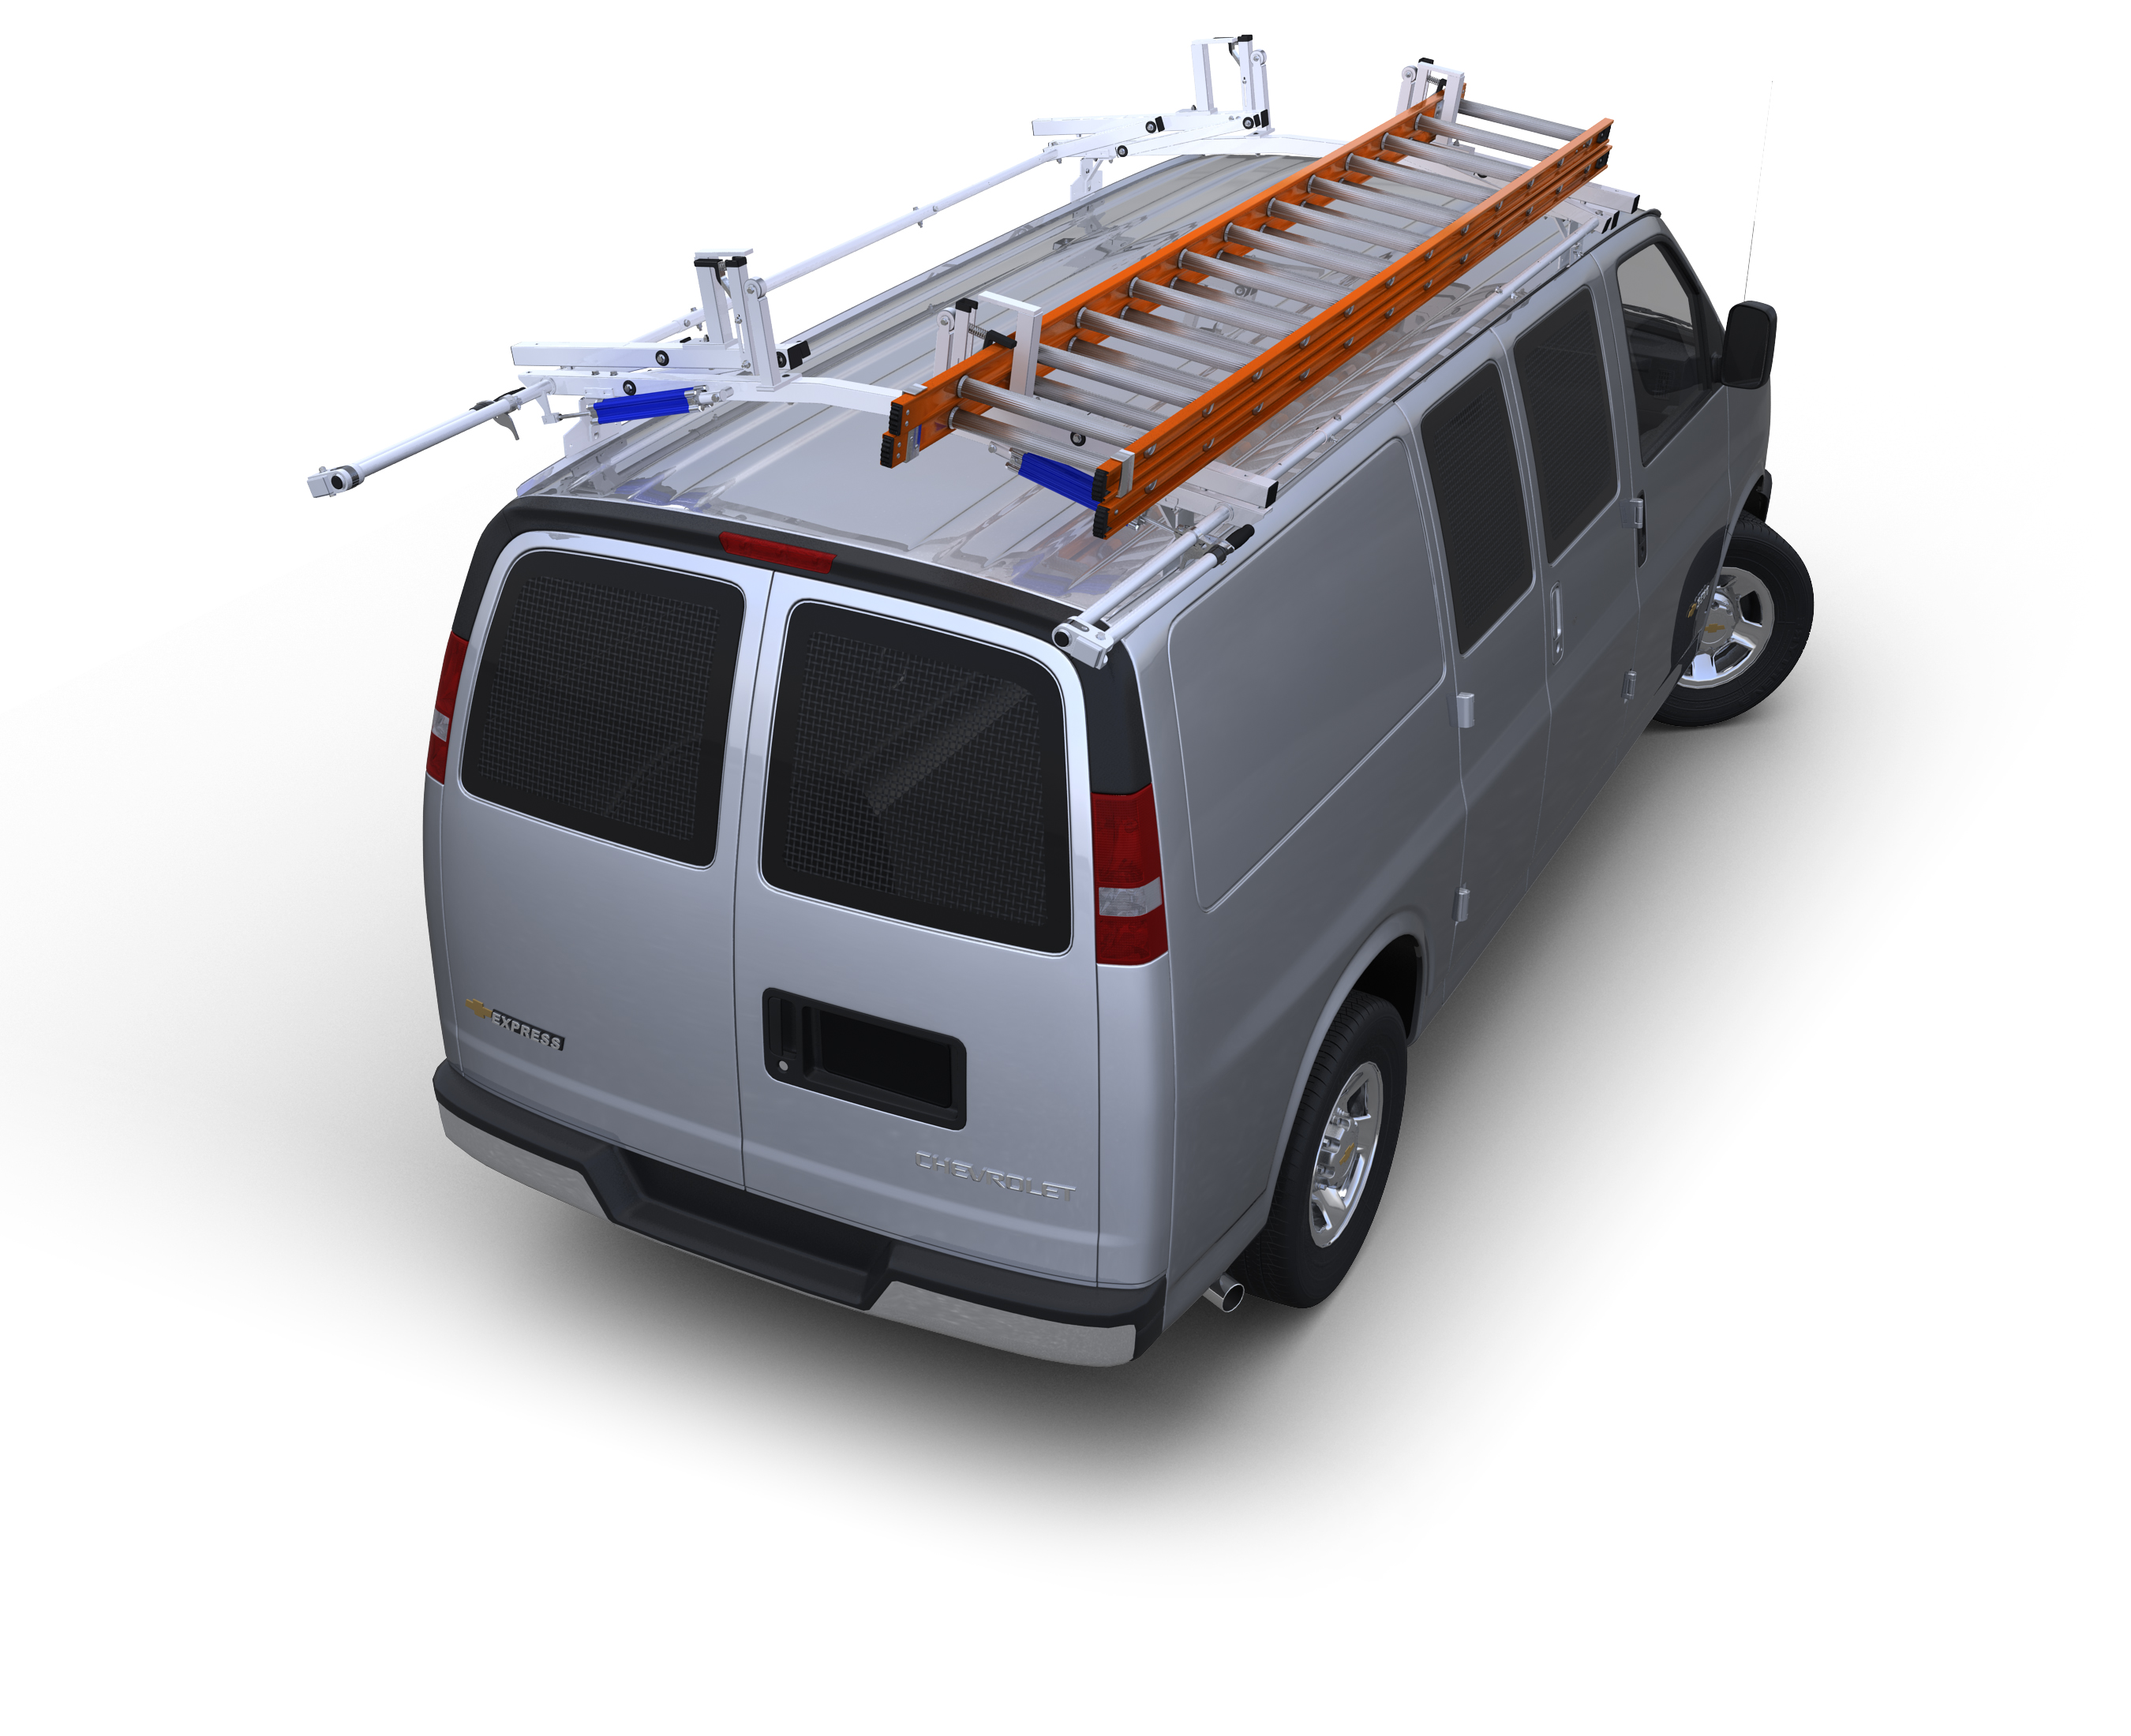 Topper Hot Dip Galvanized 8' Cargo Carrier Rack for the Ford Transit Connect